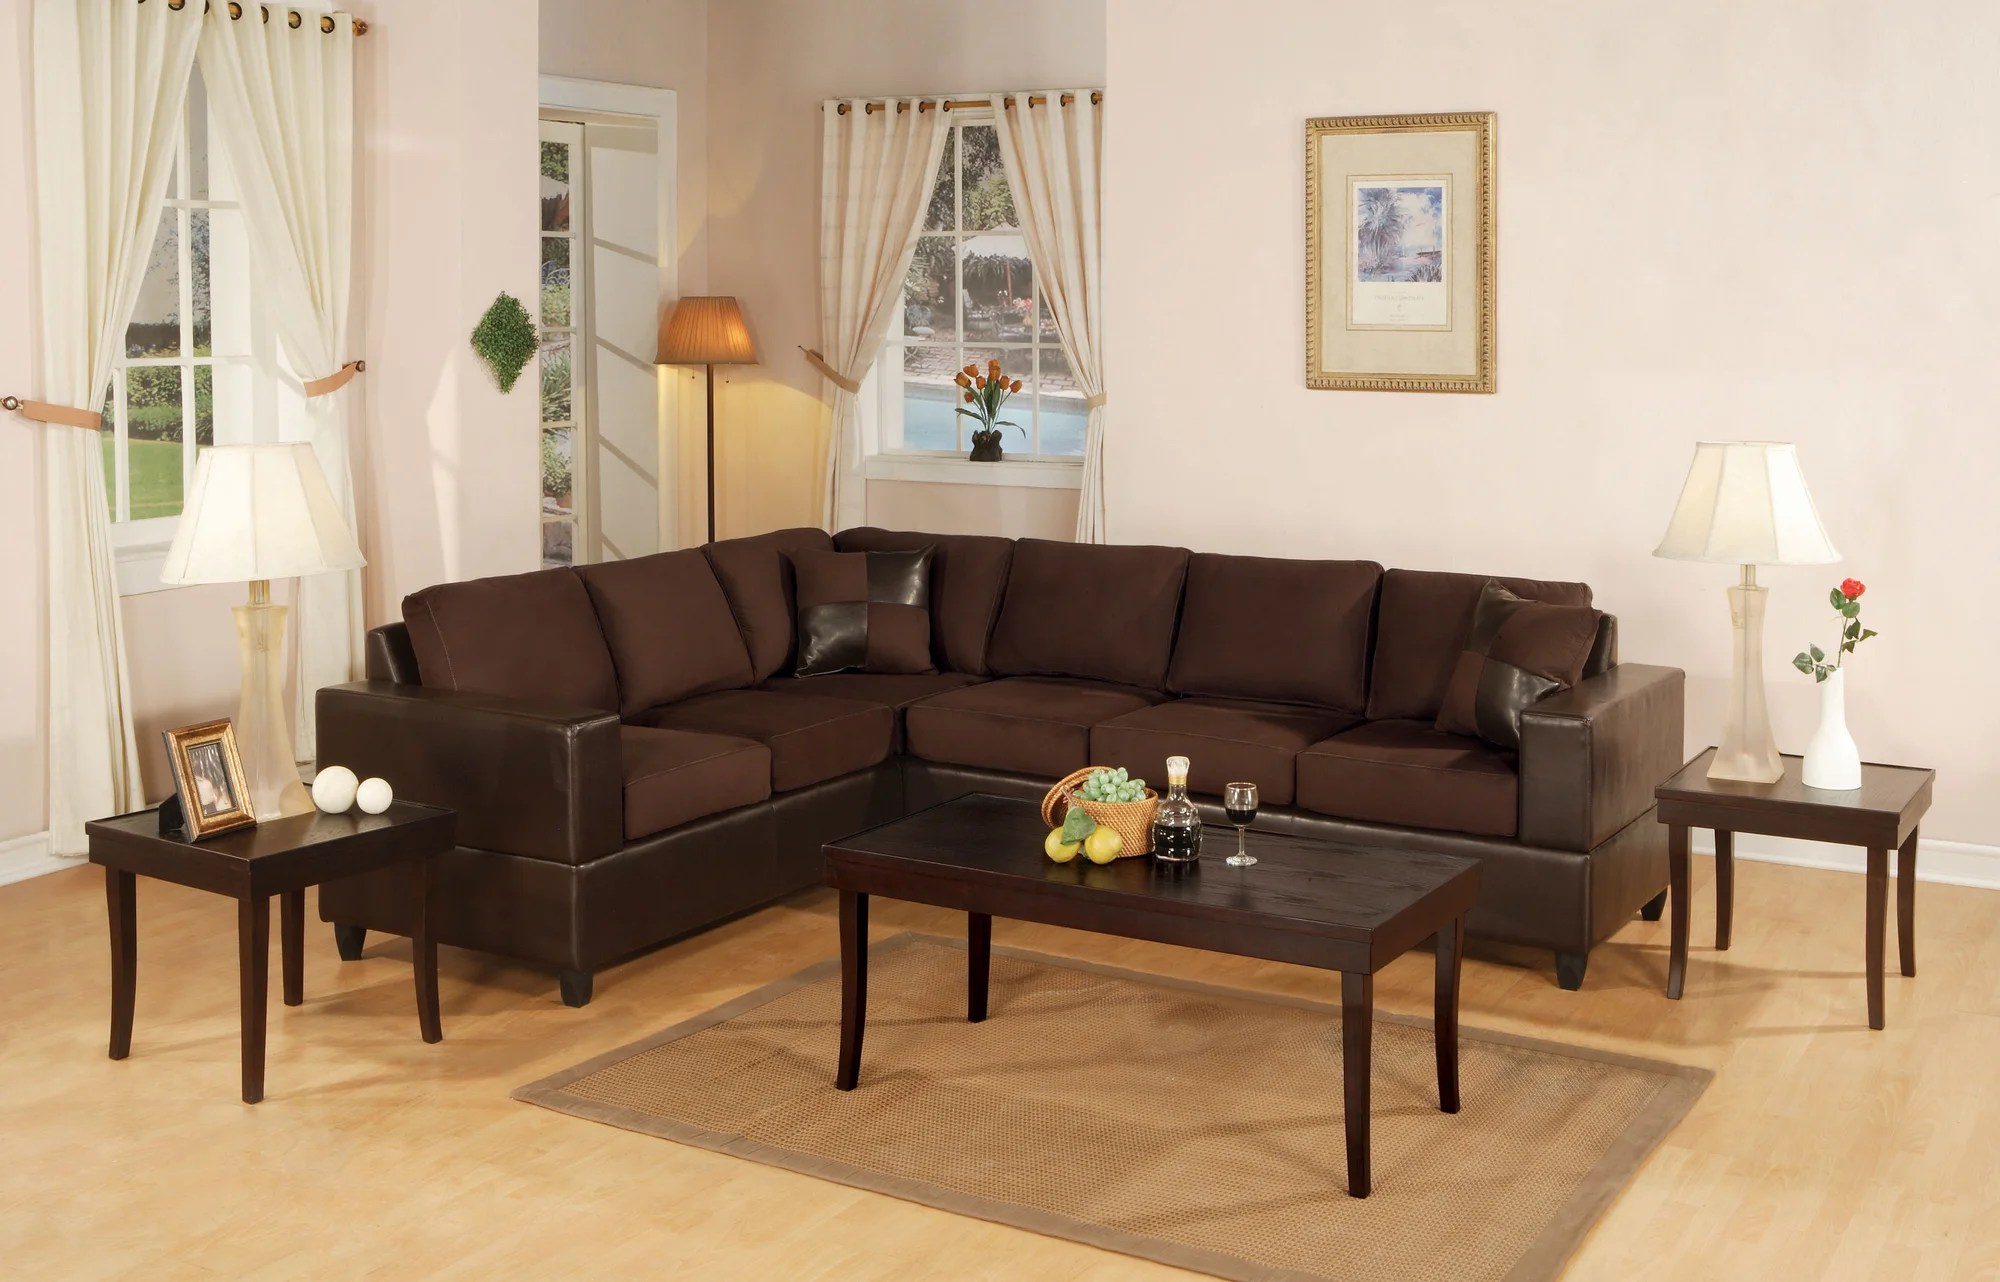 sofas on credit with no checks modern white leather sofa set living room furniture check